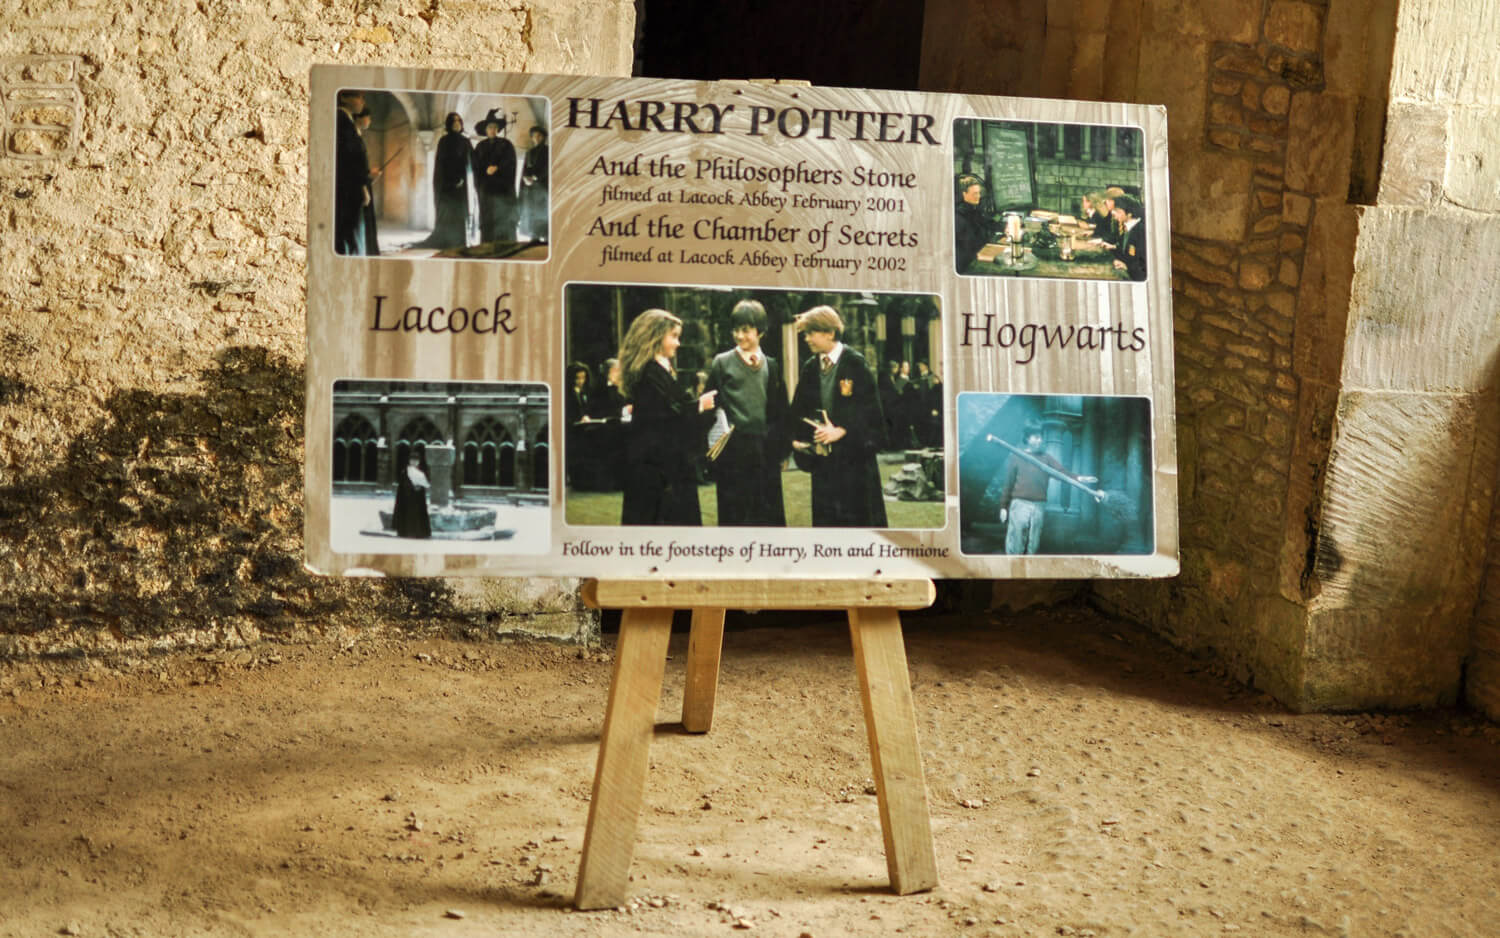 Harry Potter movie locations - Lacock - JRMI